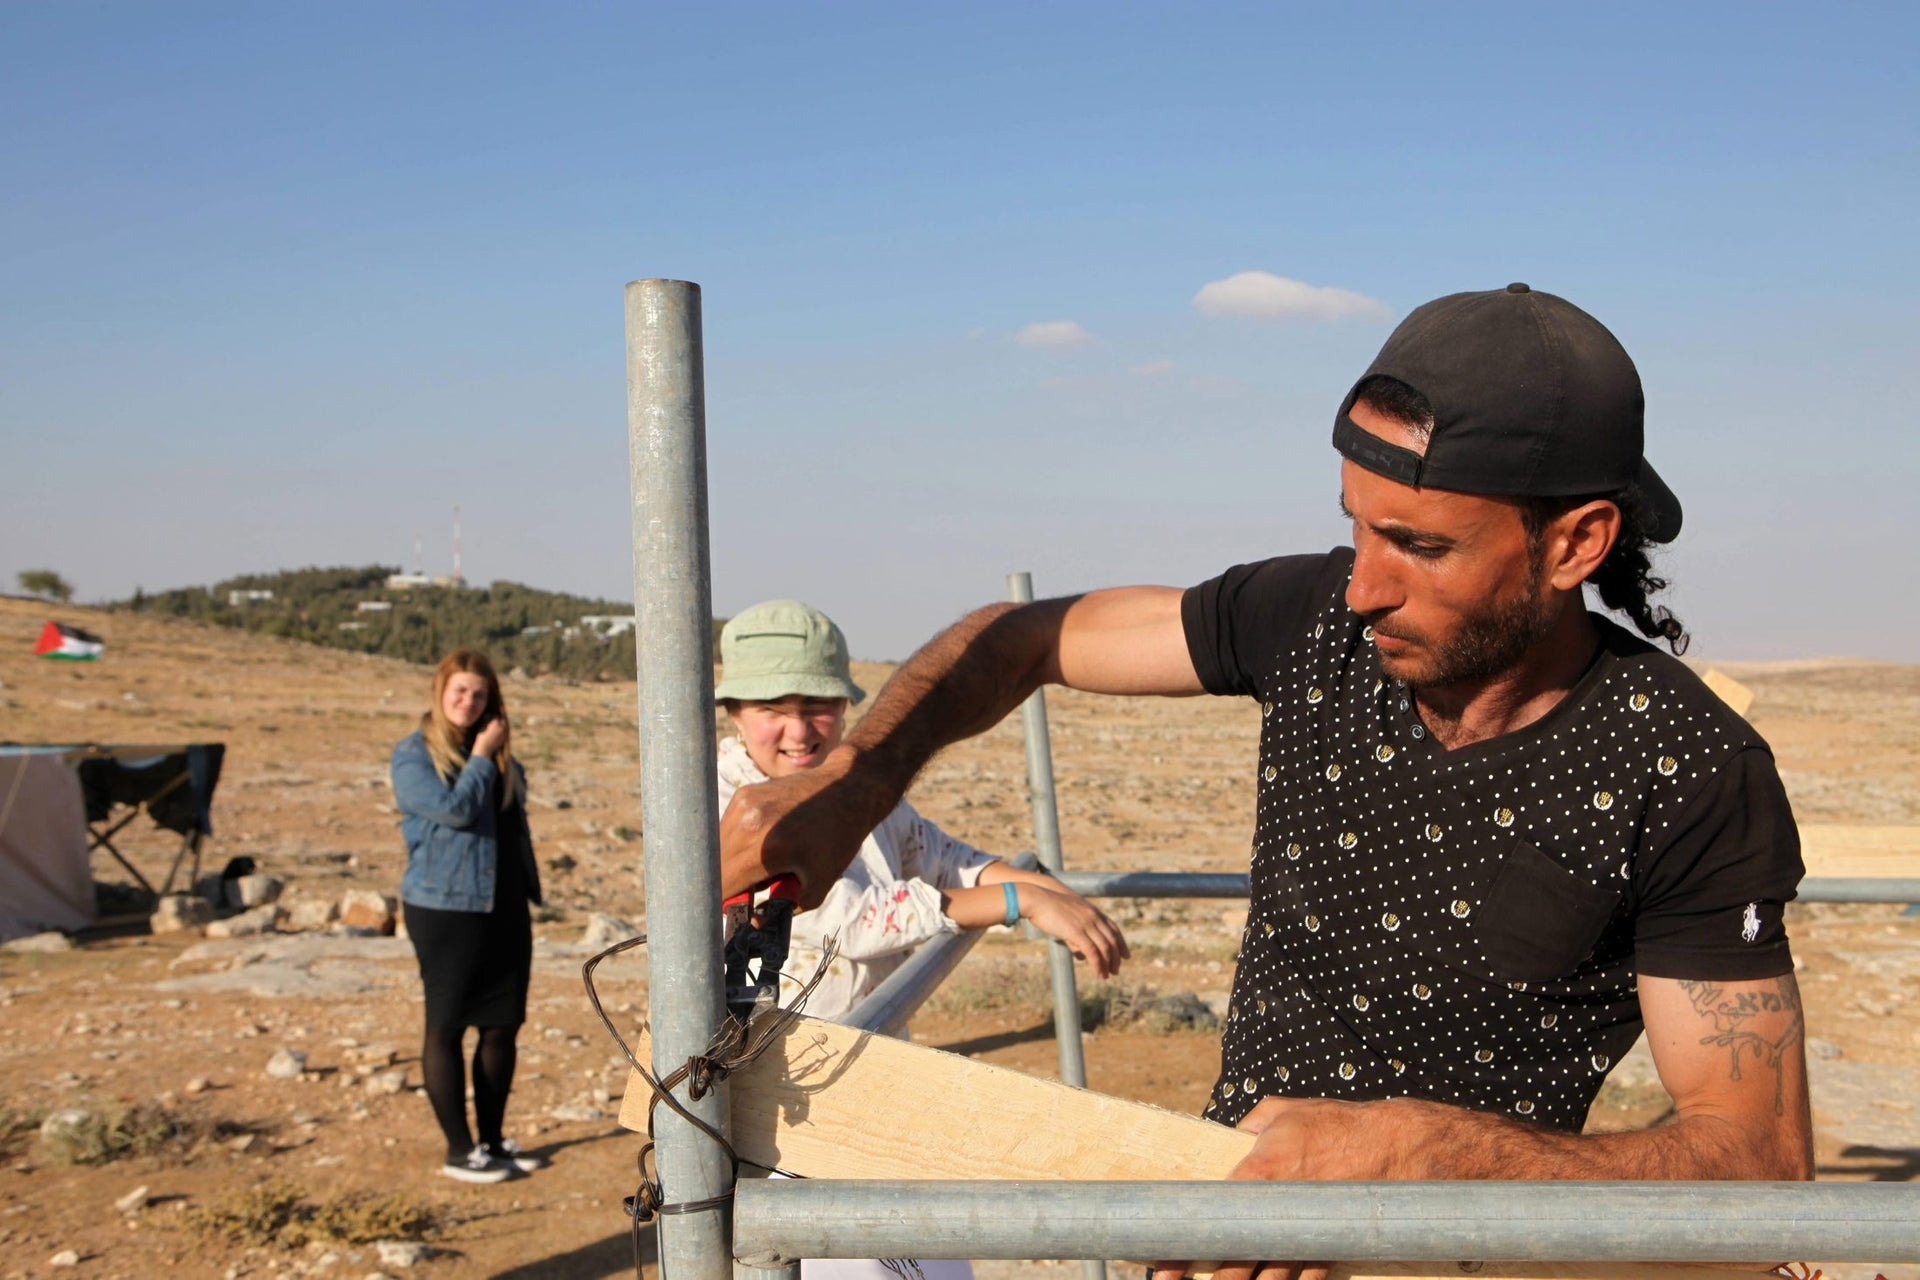 Reerecting a tent at the Sumud Freedom Camp in the West Bank, May 25, 2017.